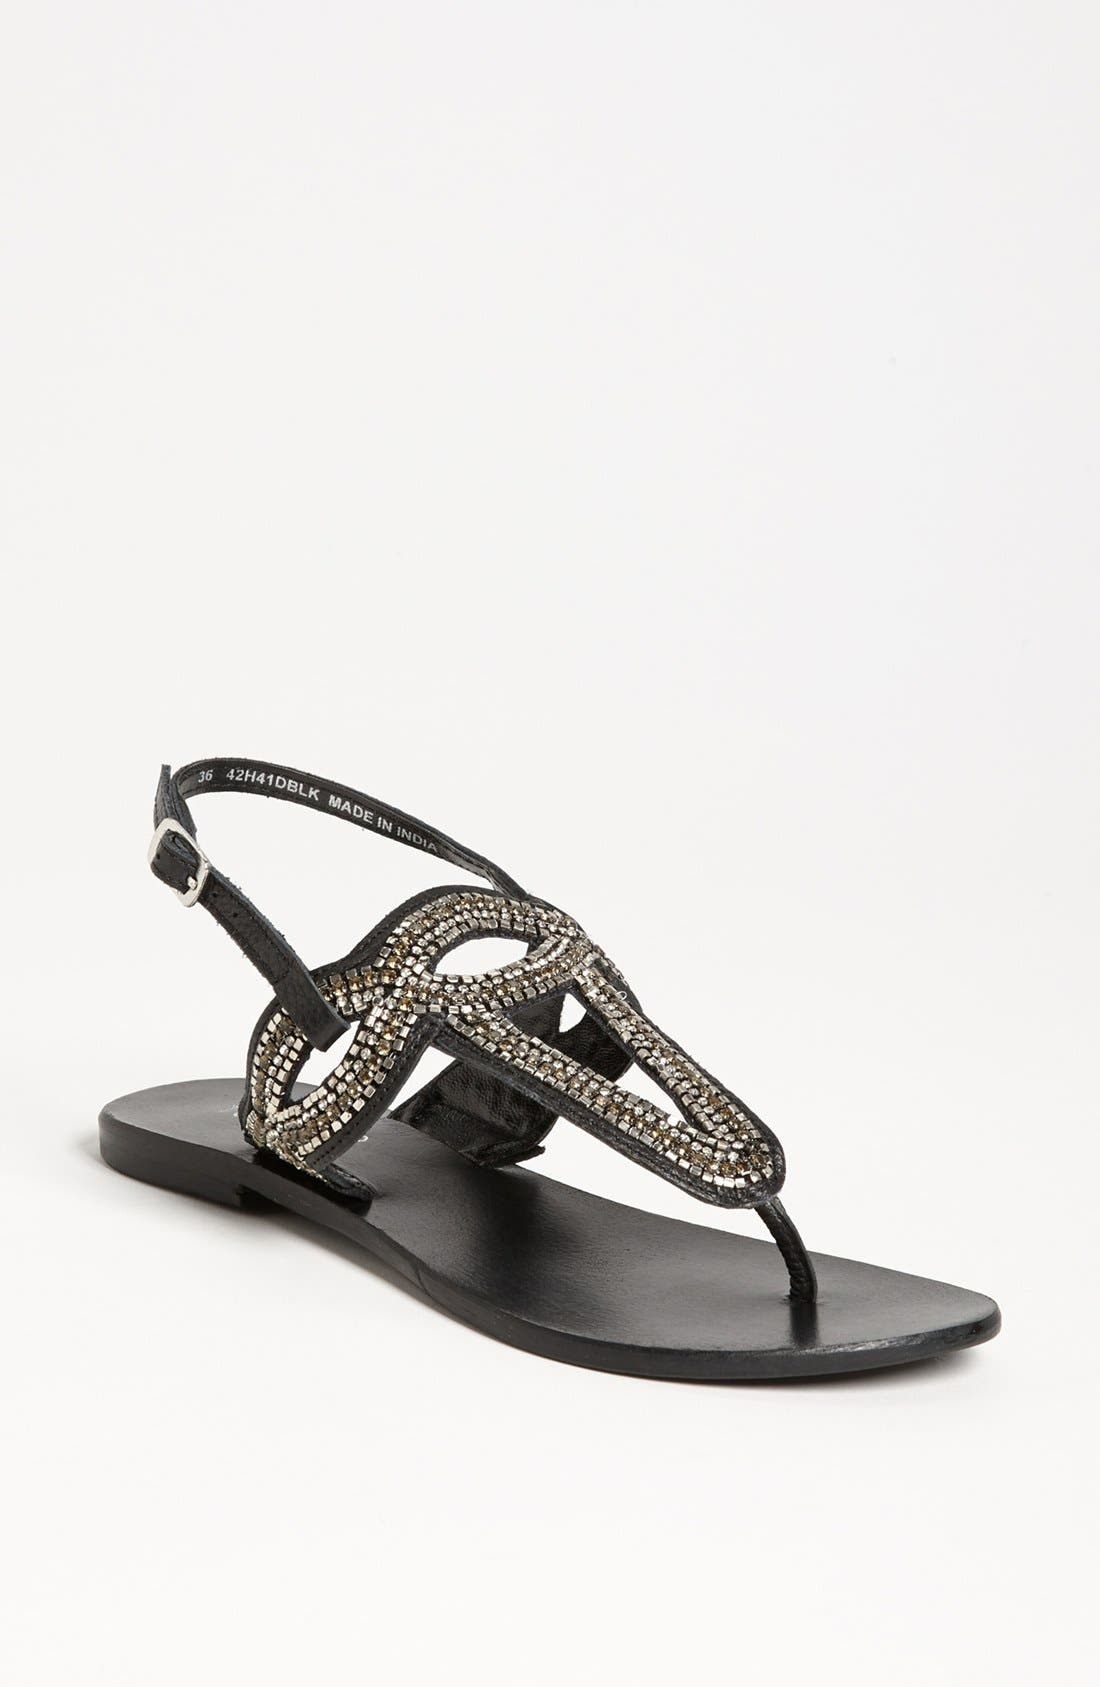 Main Image - Topshop 'Hectic' Sandal